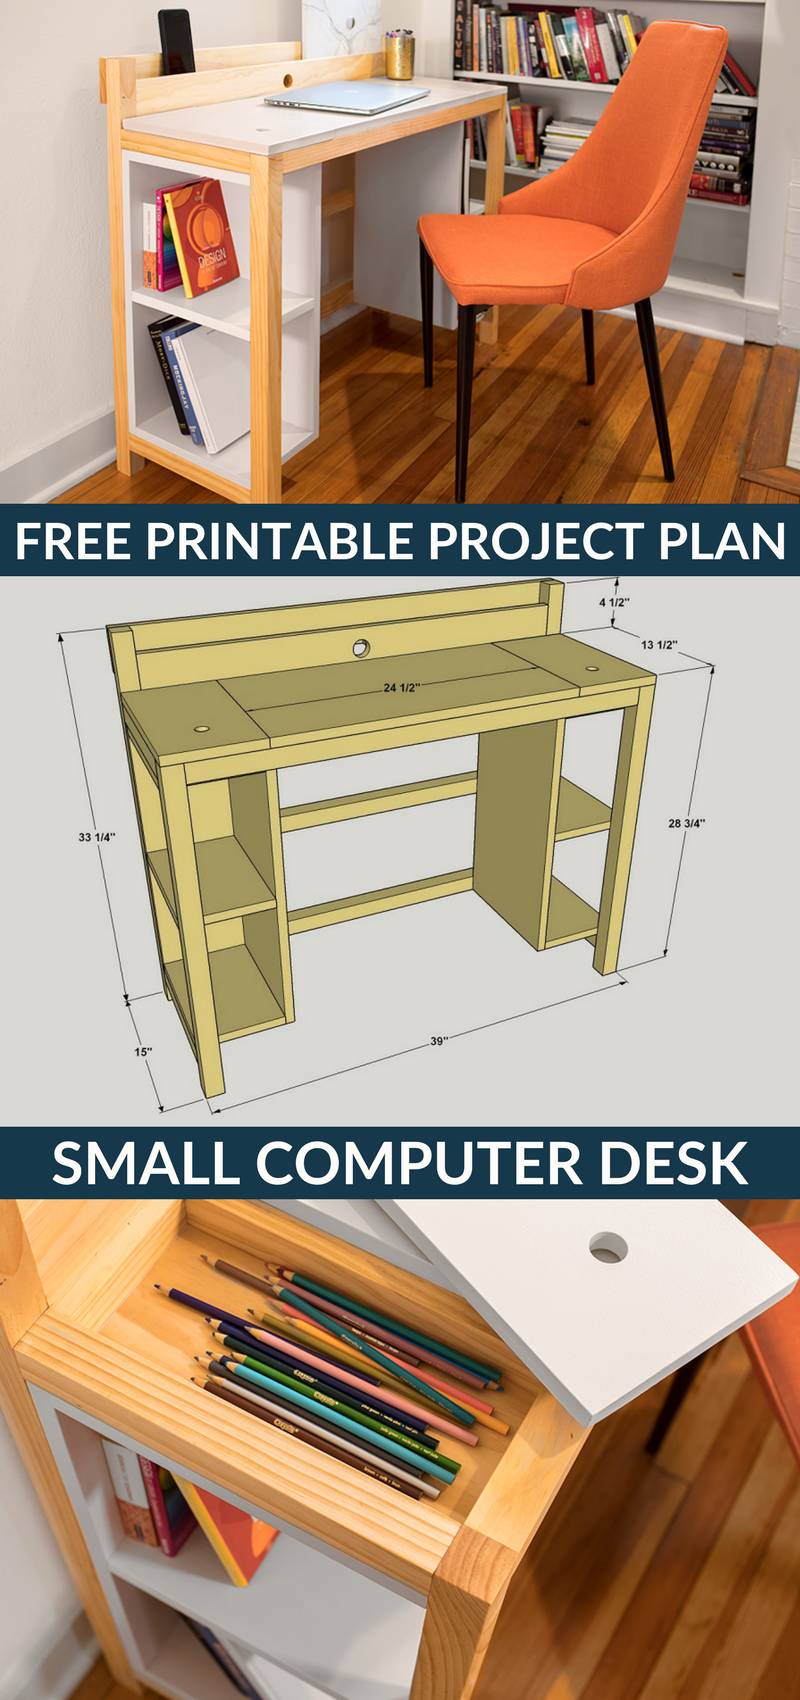 How To Build A Diy Small Computer Desk Free Printable Project Plans On Buildsomething Com This Project Prov Small Computer Desk Small Space Diy Bedroom Diy